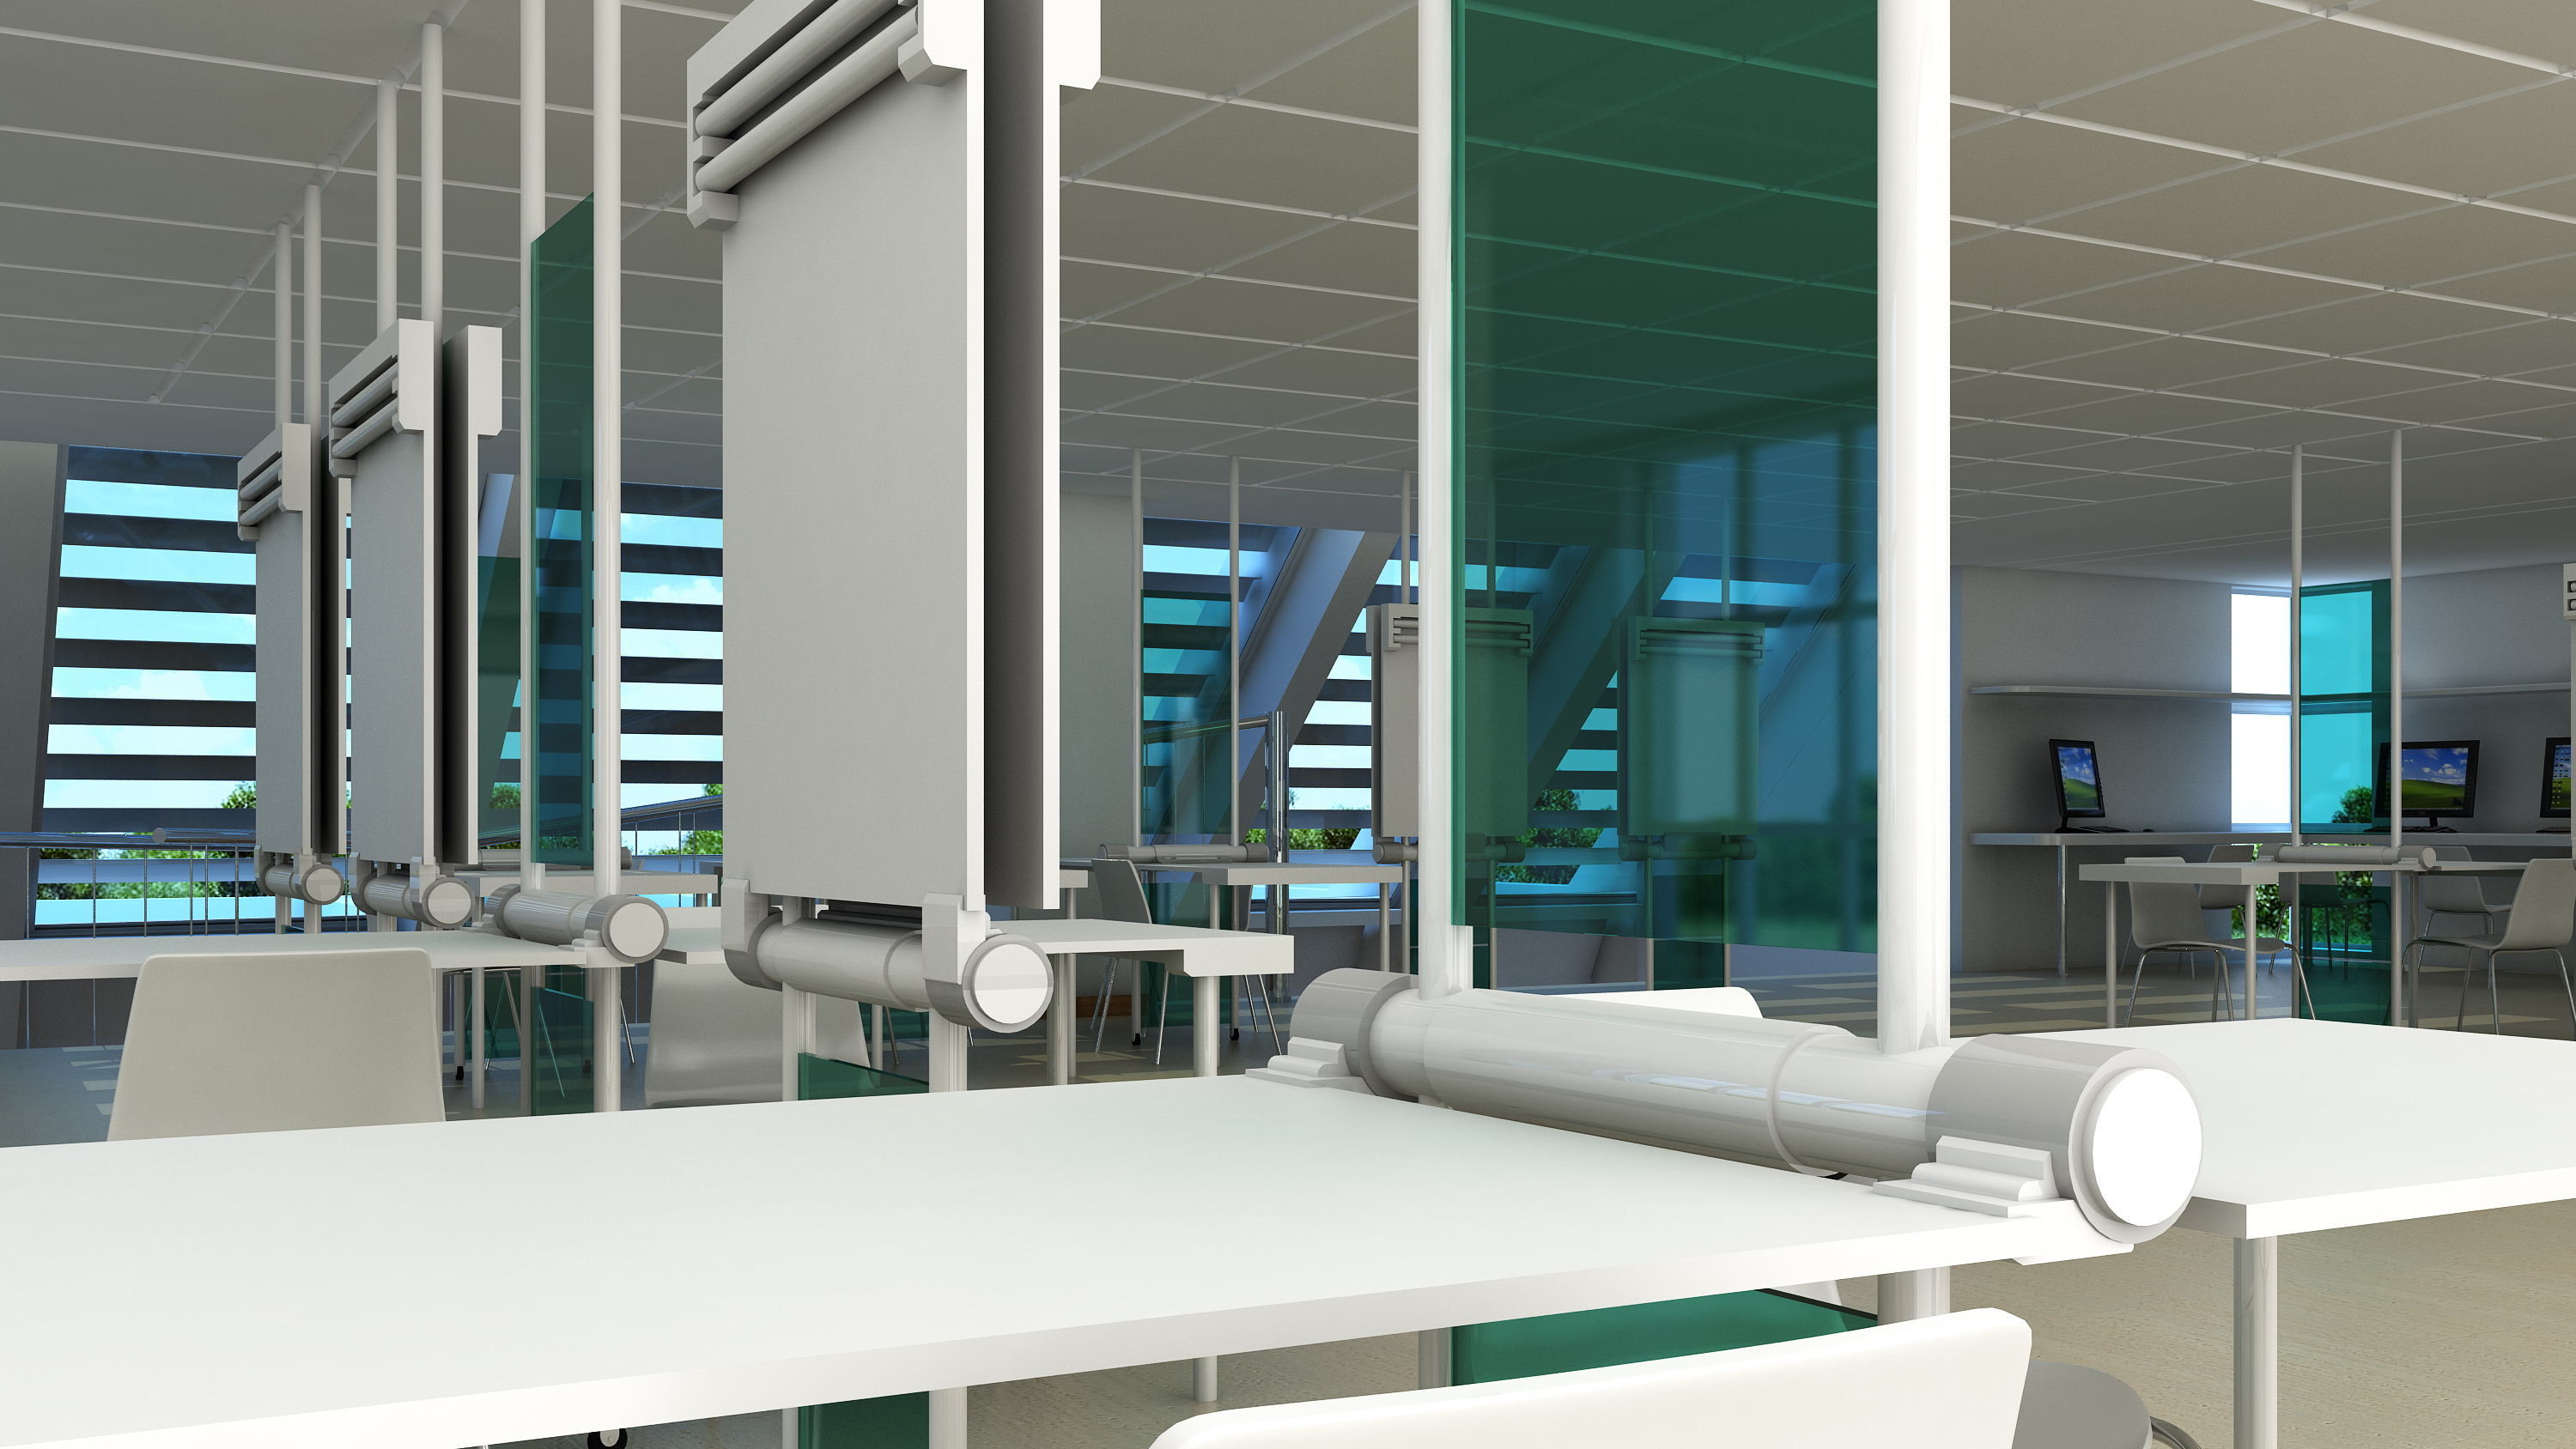 architecture studio interior 3D visualization tables